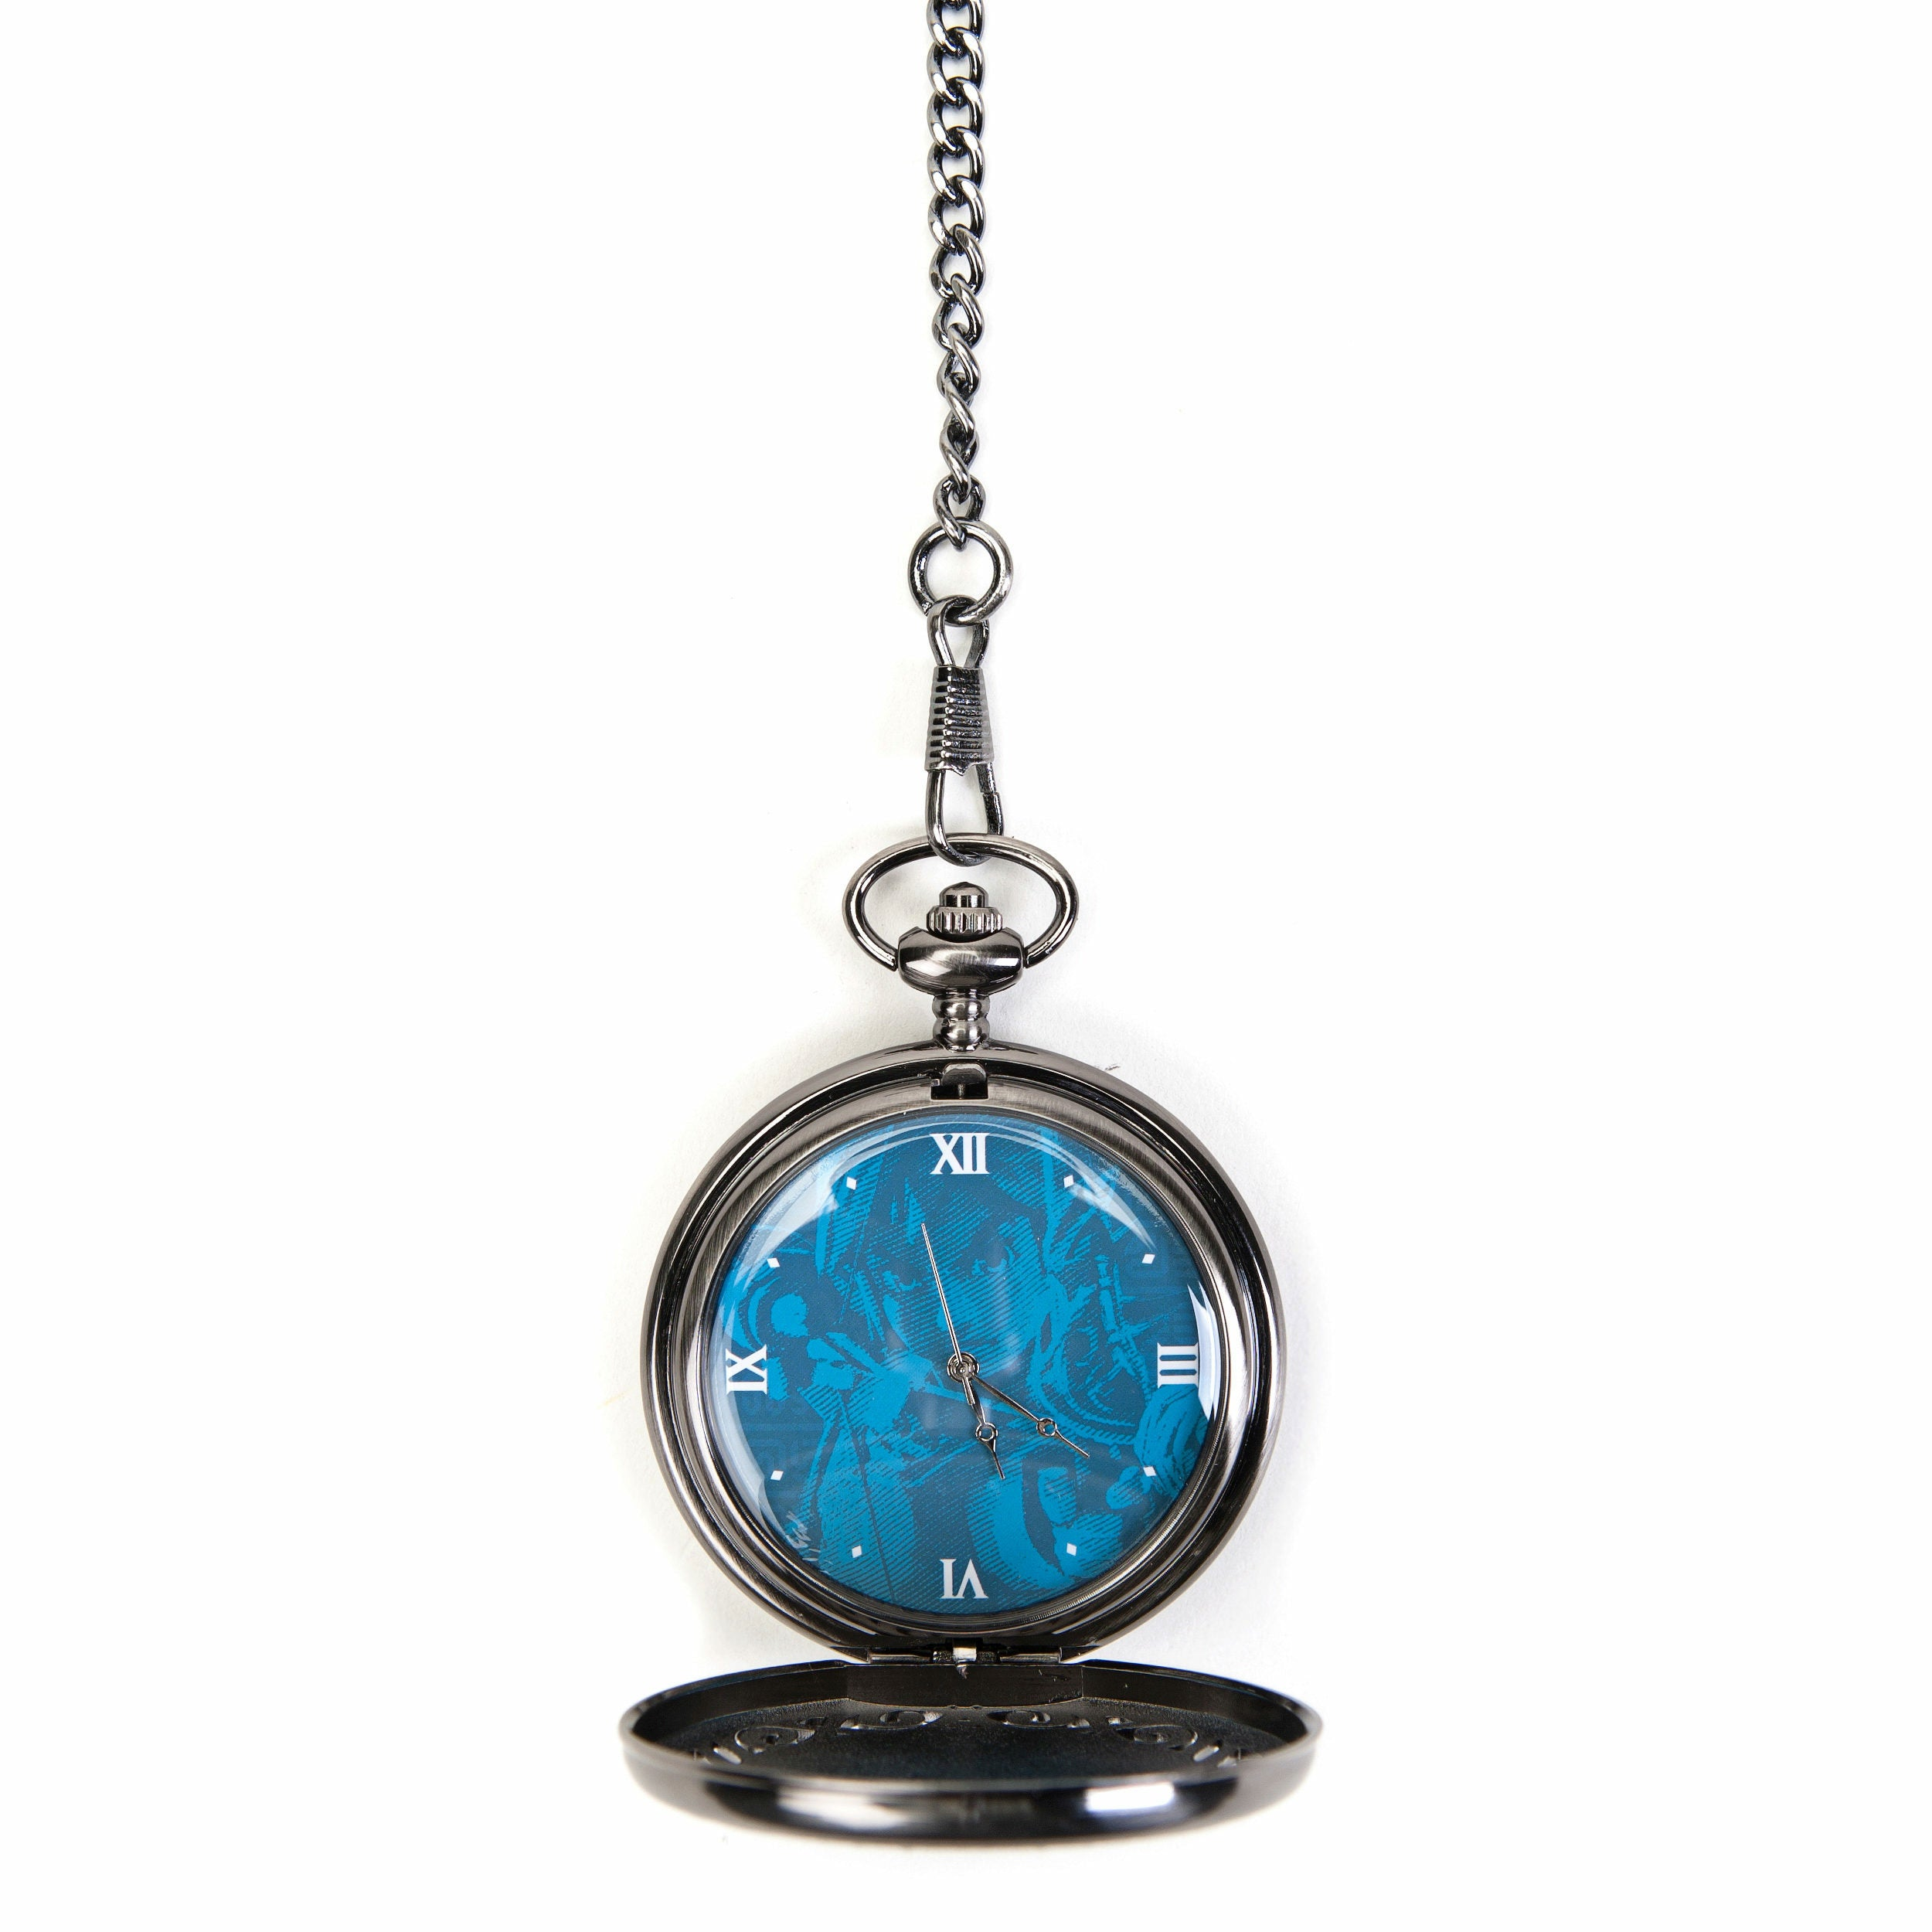 The Legend of Zelda Hyrule Kingdom Link Pocket Watch